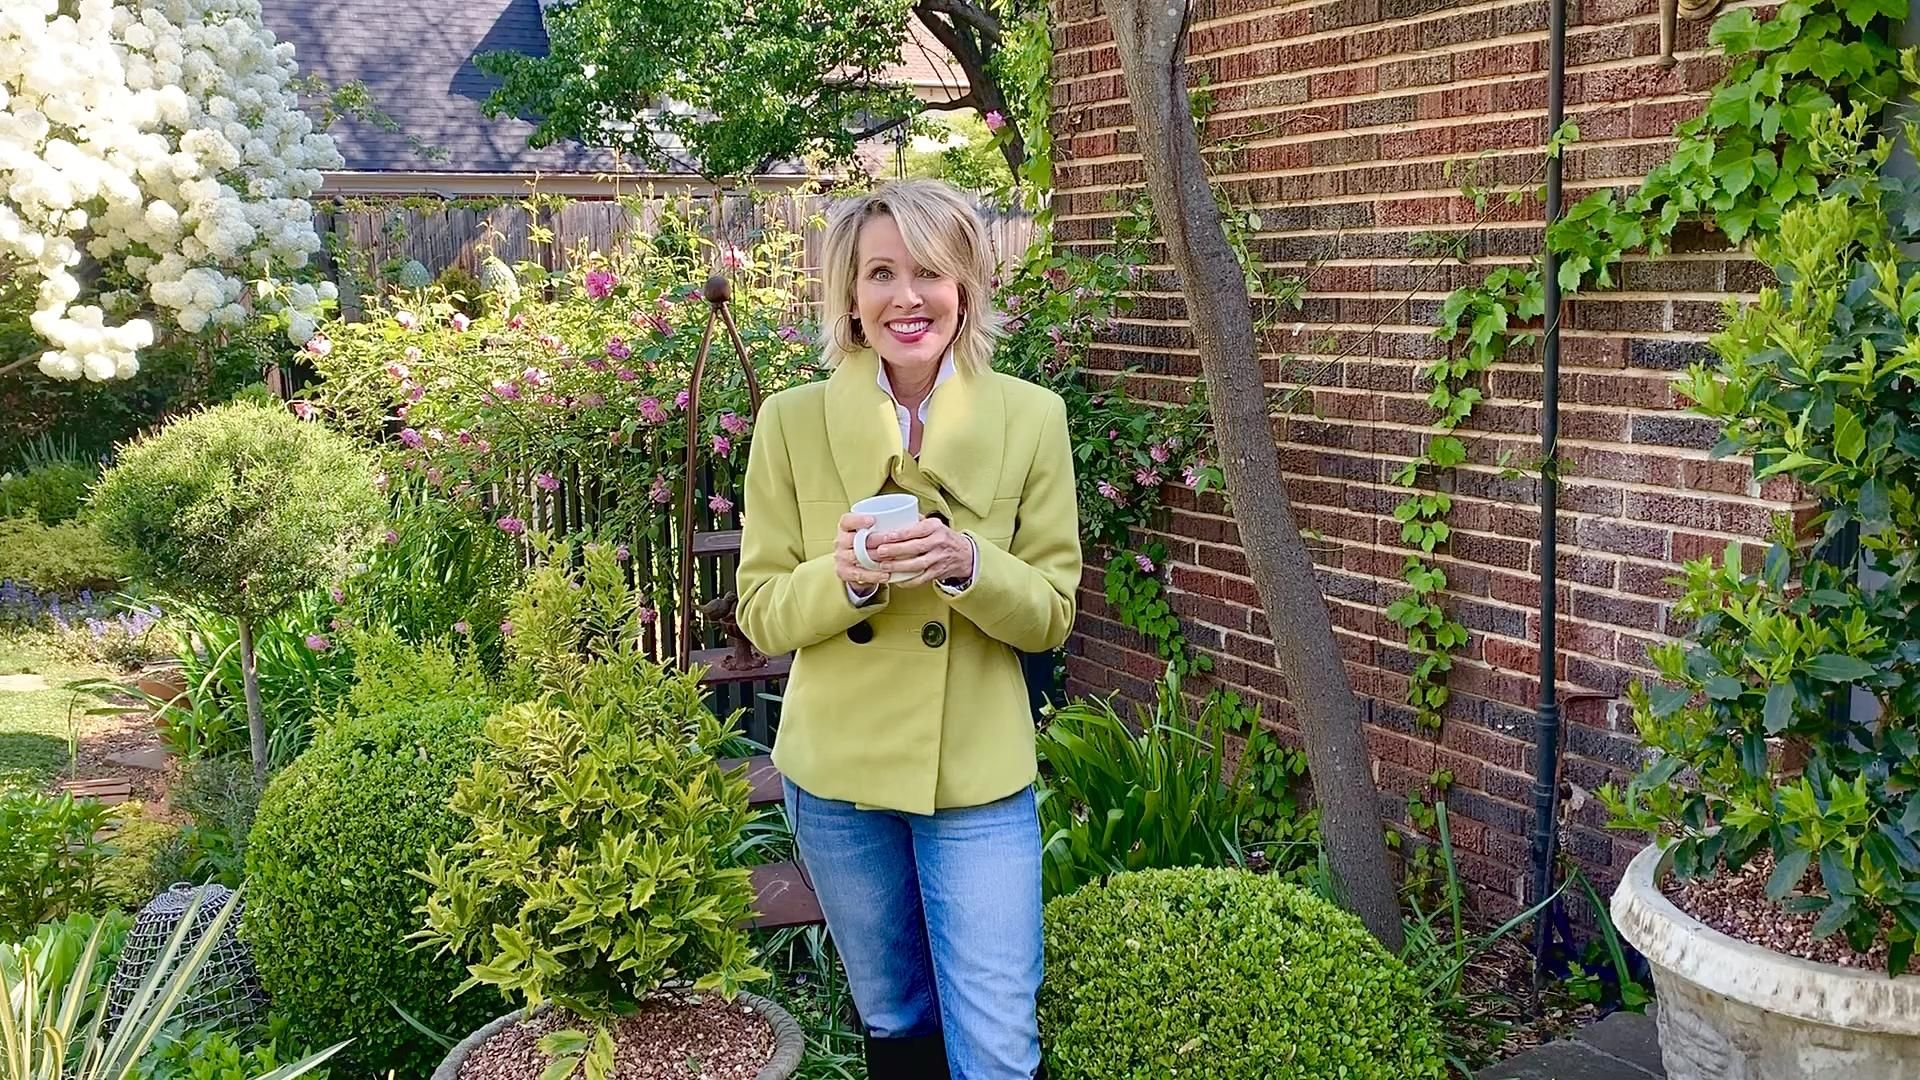 Here's a simple way to refresh your garden: create or rearrange containers in one color palette. In this video, Linda Vater shares her color block garden design in lime green or chartreuse with accents of purple plants. This garden design idea works well in landscape beds too!  #gardendesign #southernliving #containergardening